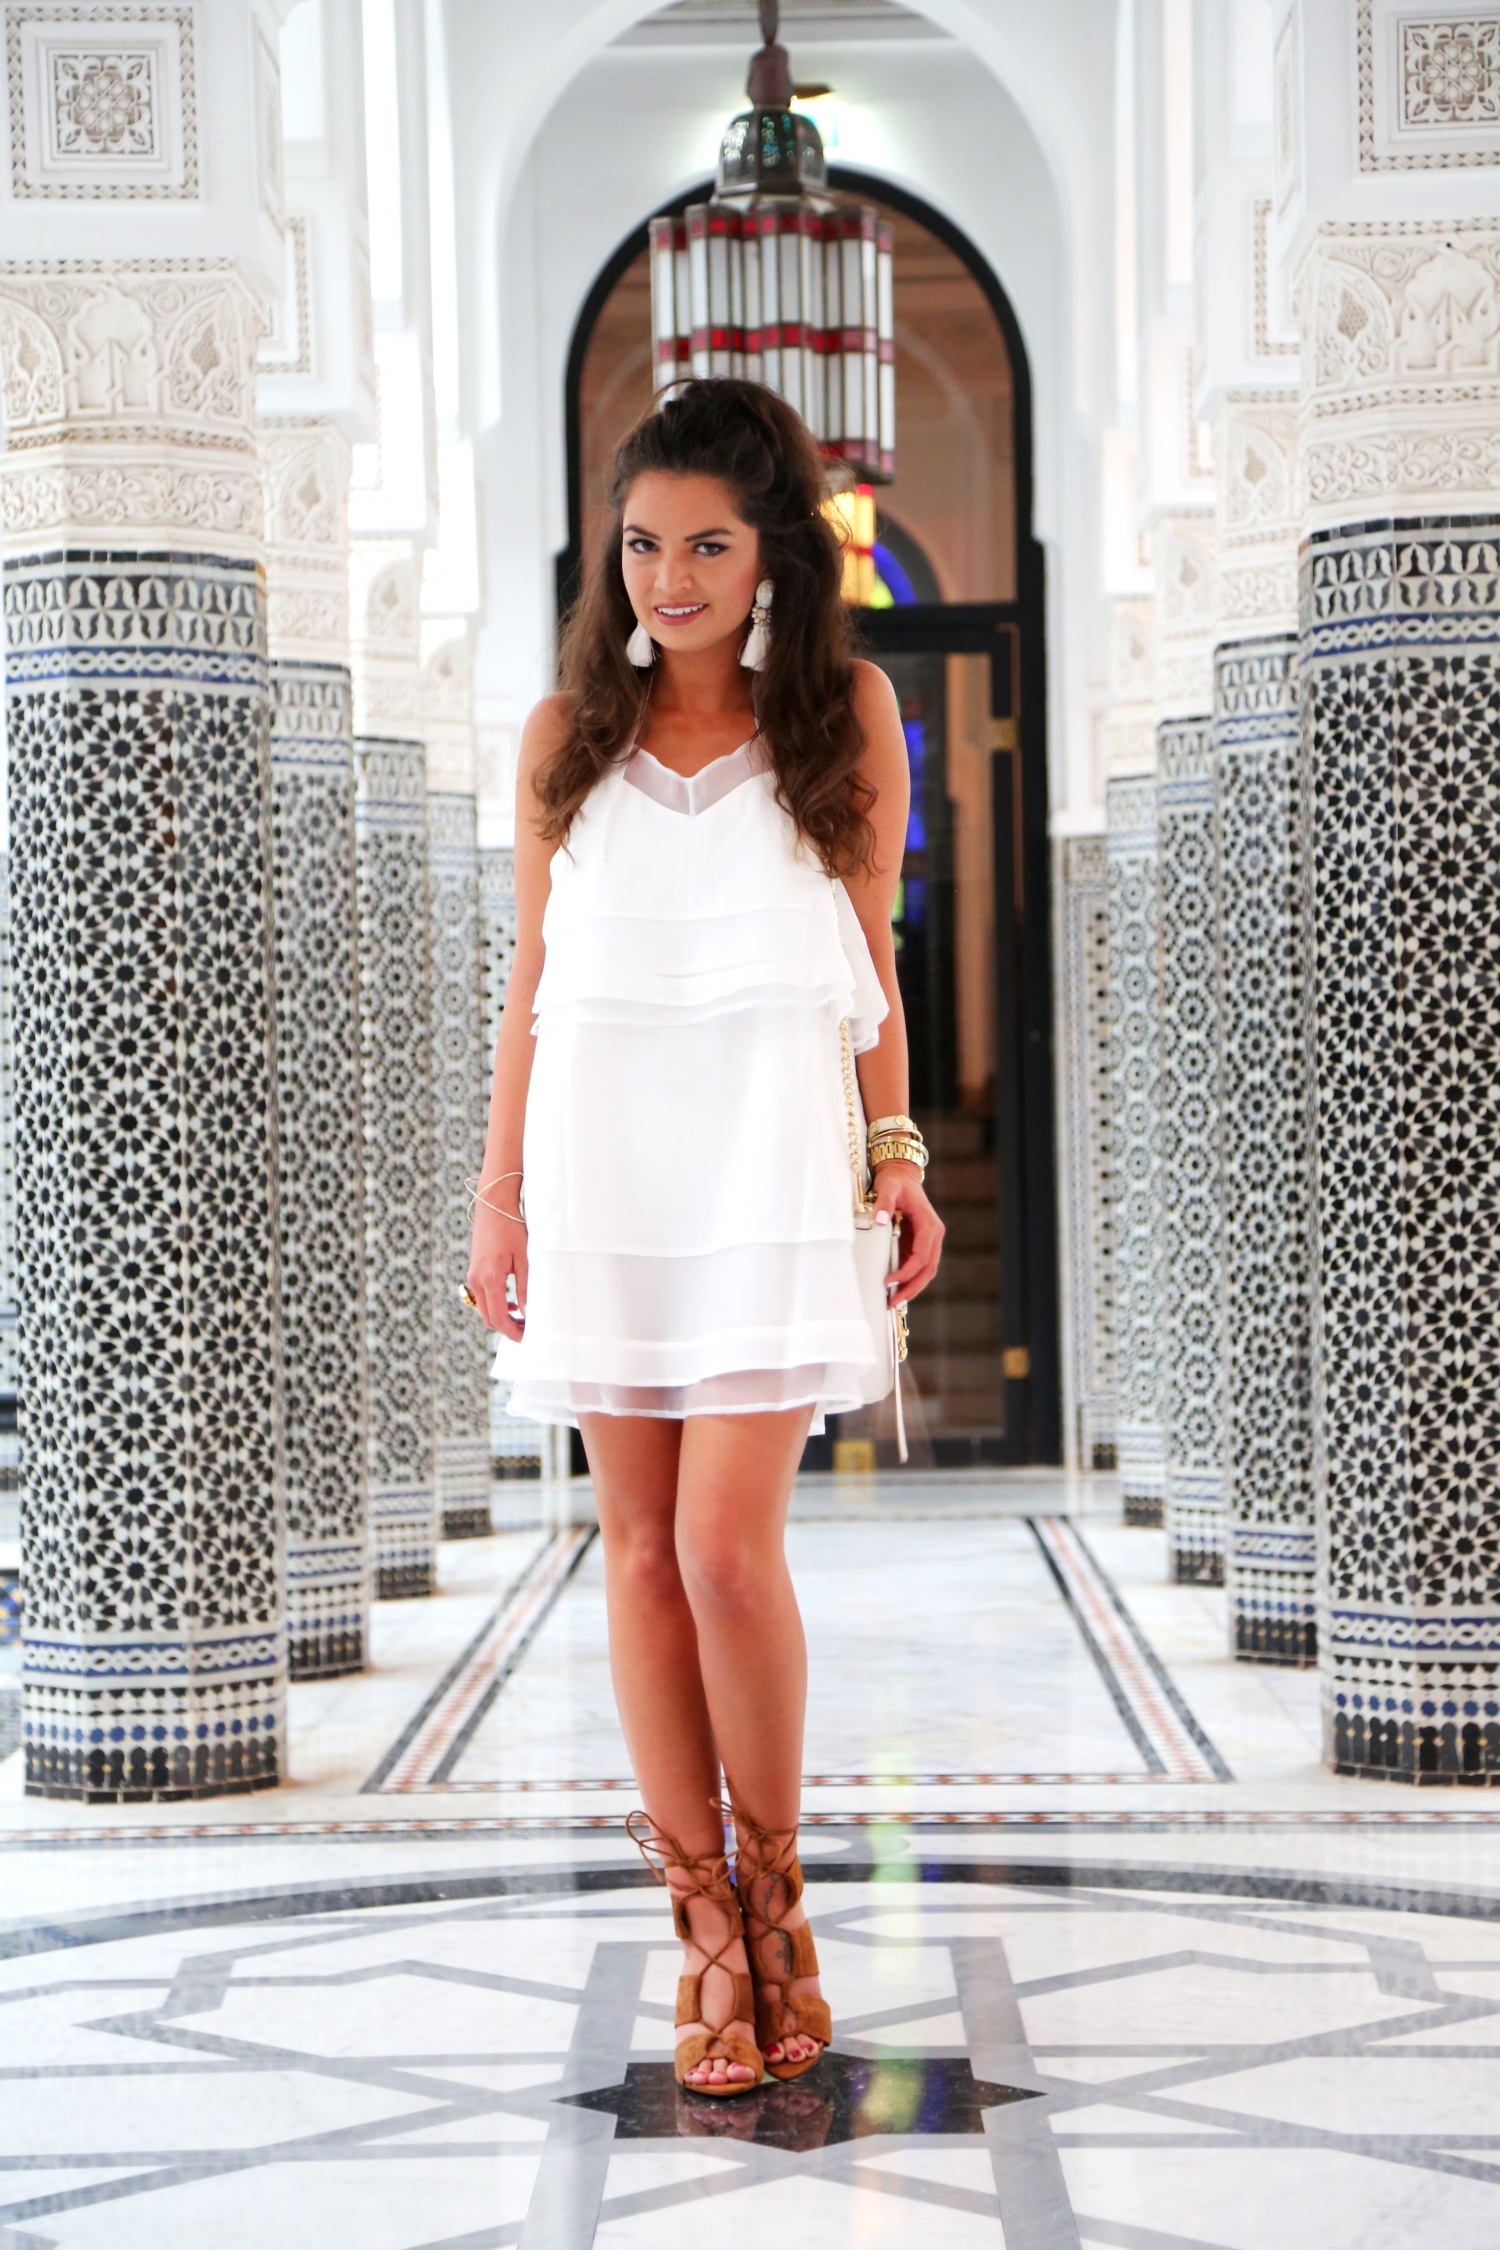 outfit-white-dress-lamamounia-hotel-marrakech